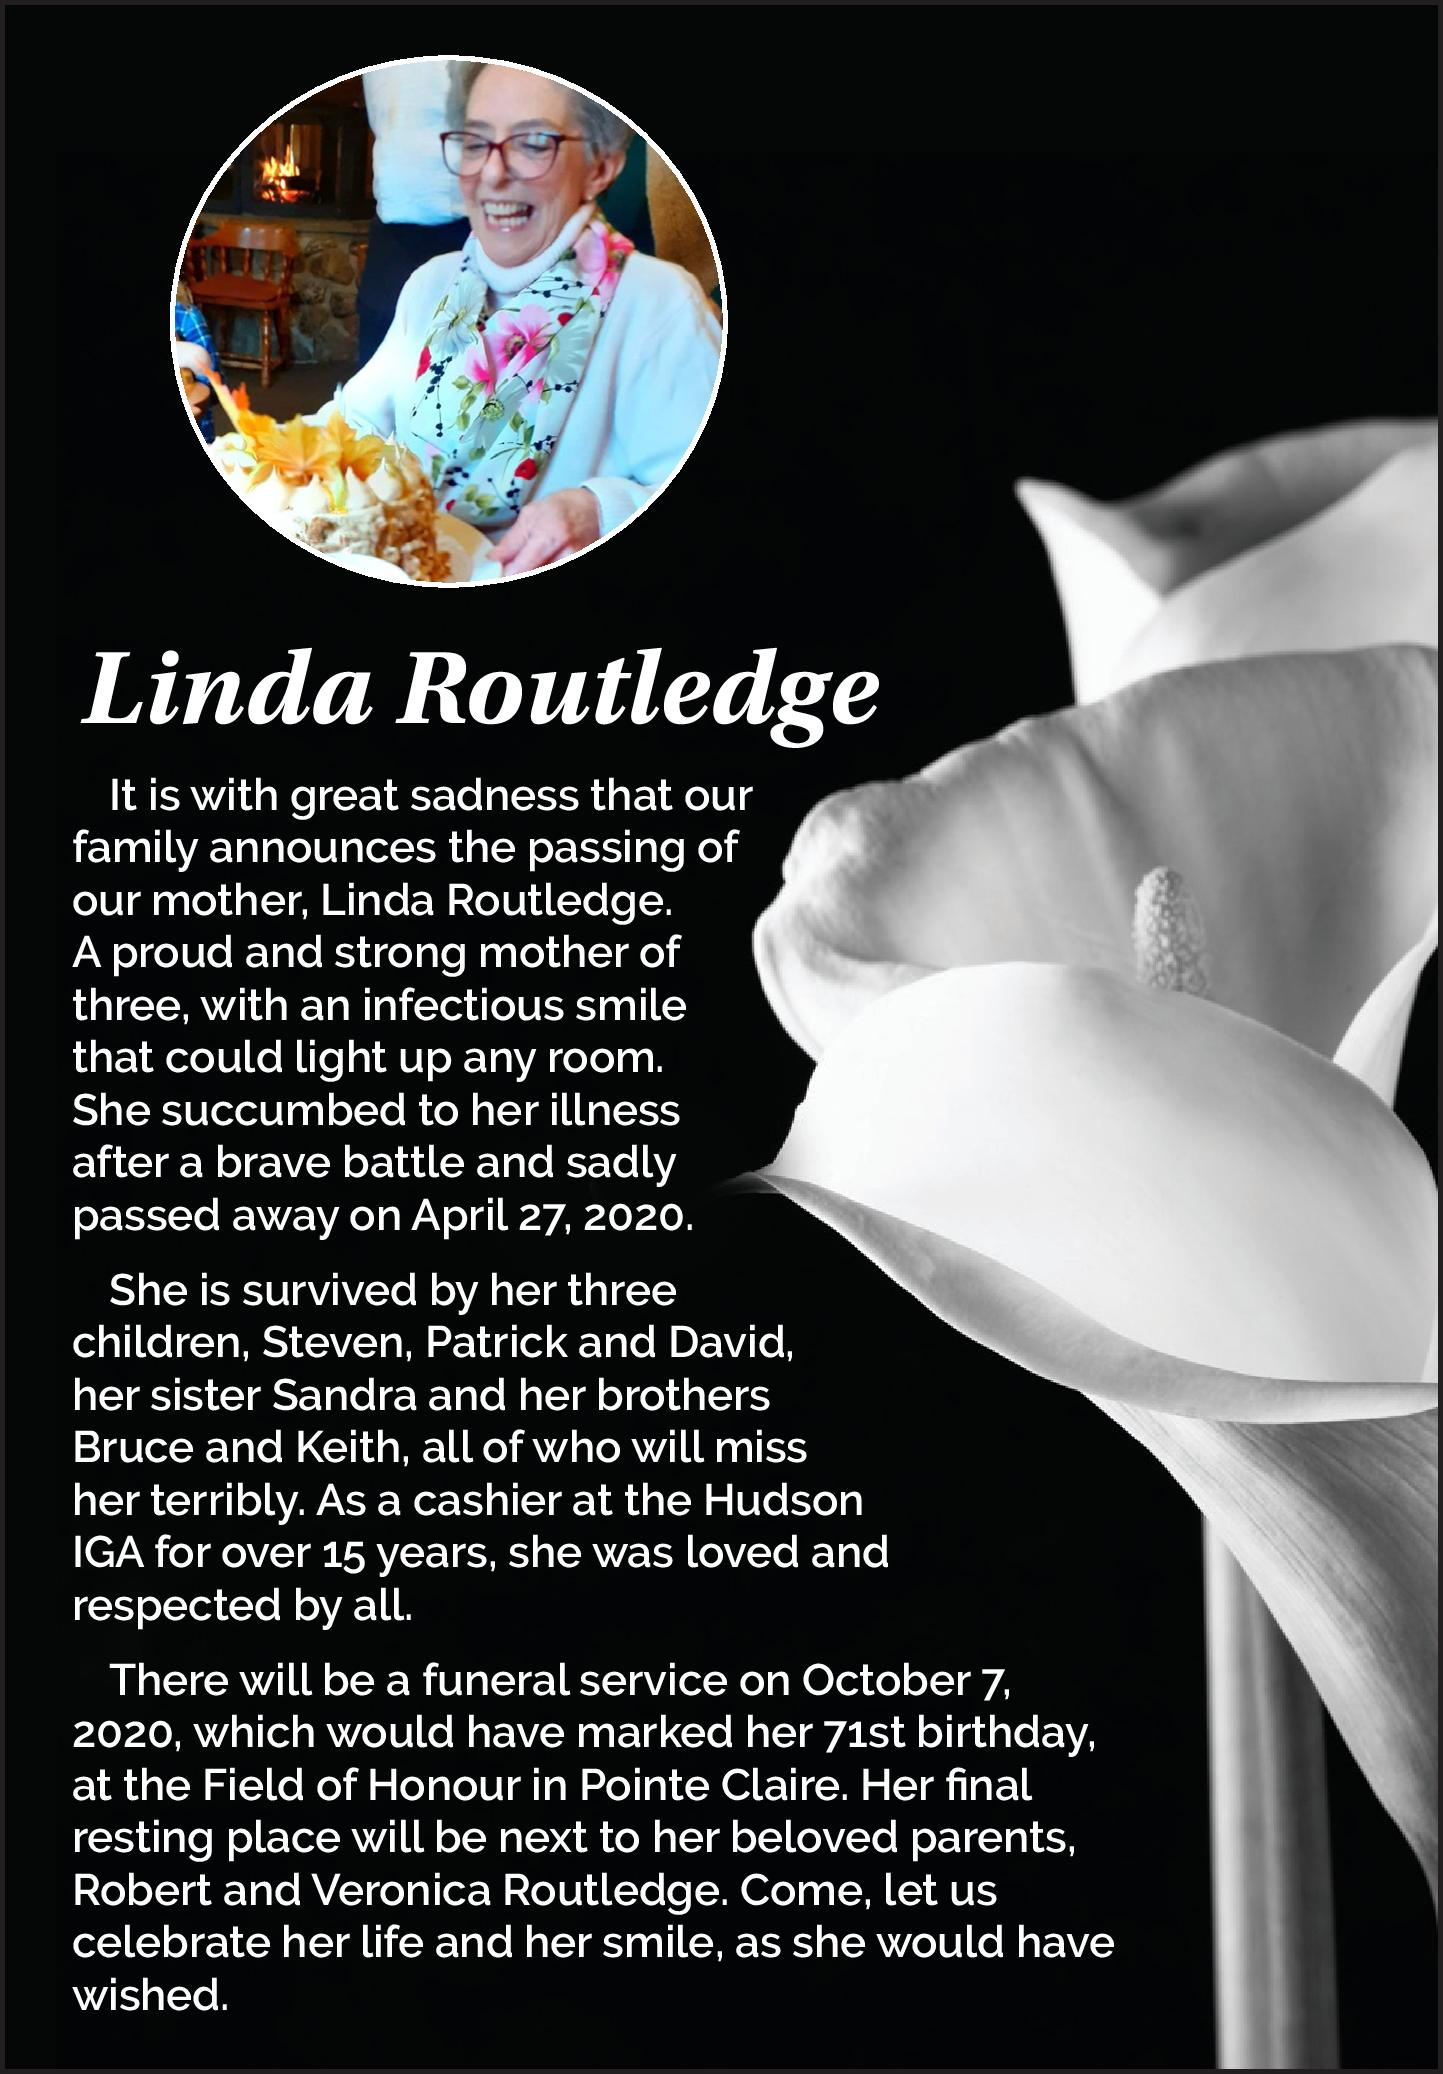 Linda Routledge